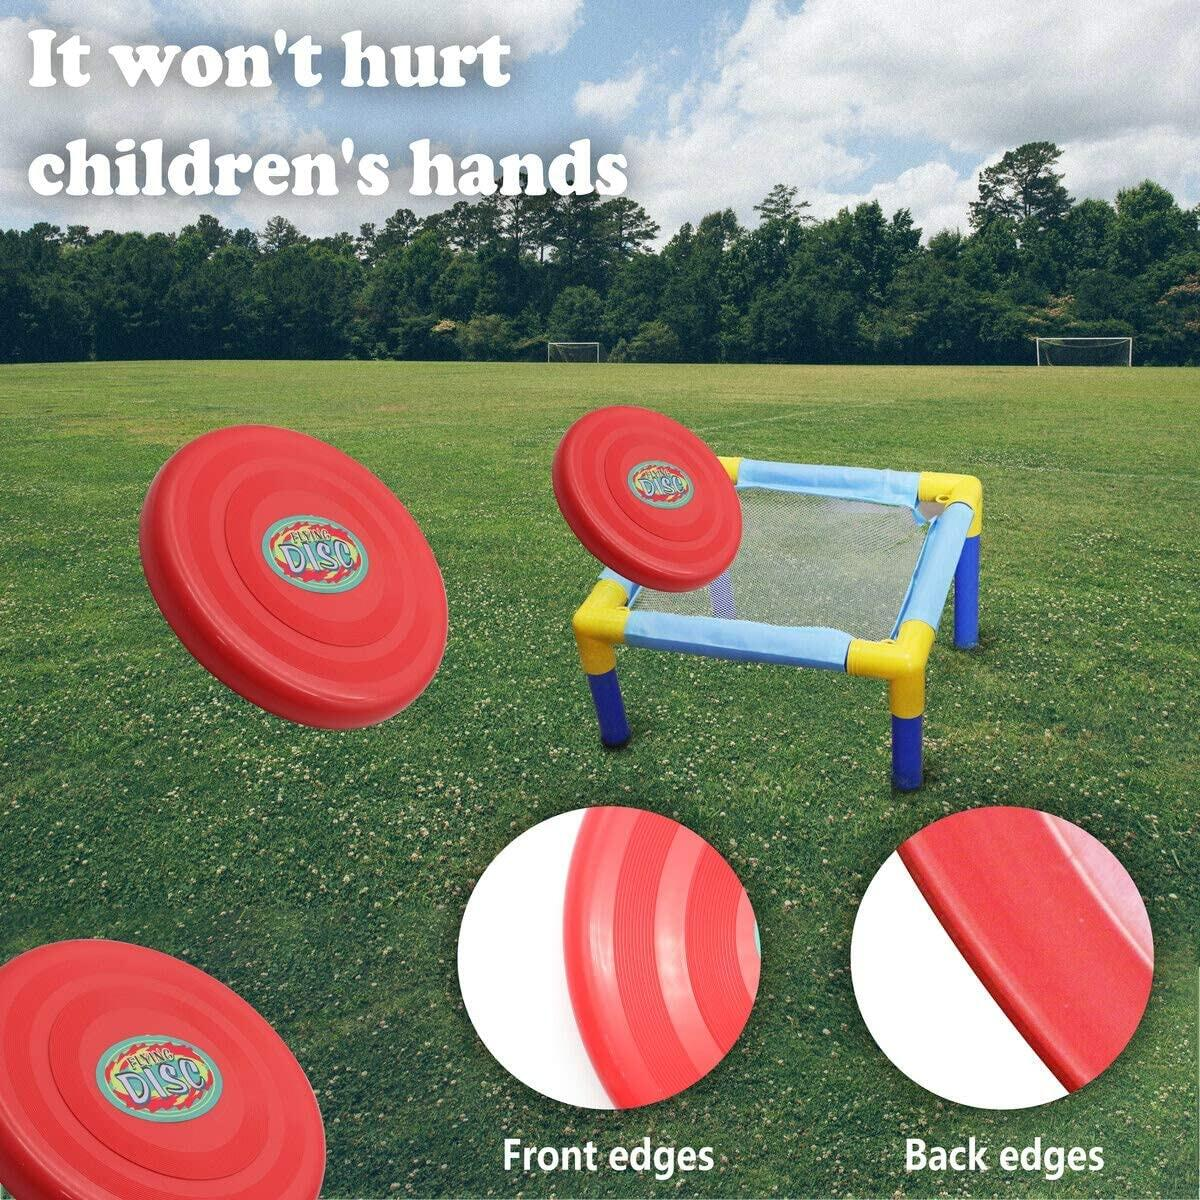 Exciting Frisbee Disc Golf Set for Kids – Plastic Flying Disc Set for Outdoors, Beach, Backyard Sports Play Discs – Kids Frisbee Golf Discs for Boys, Girls, Children & Family Fun!